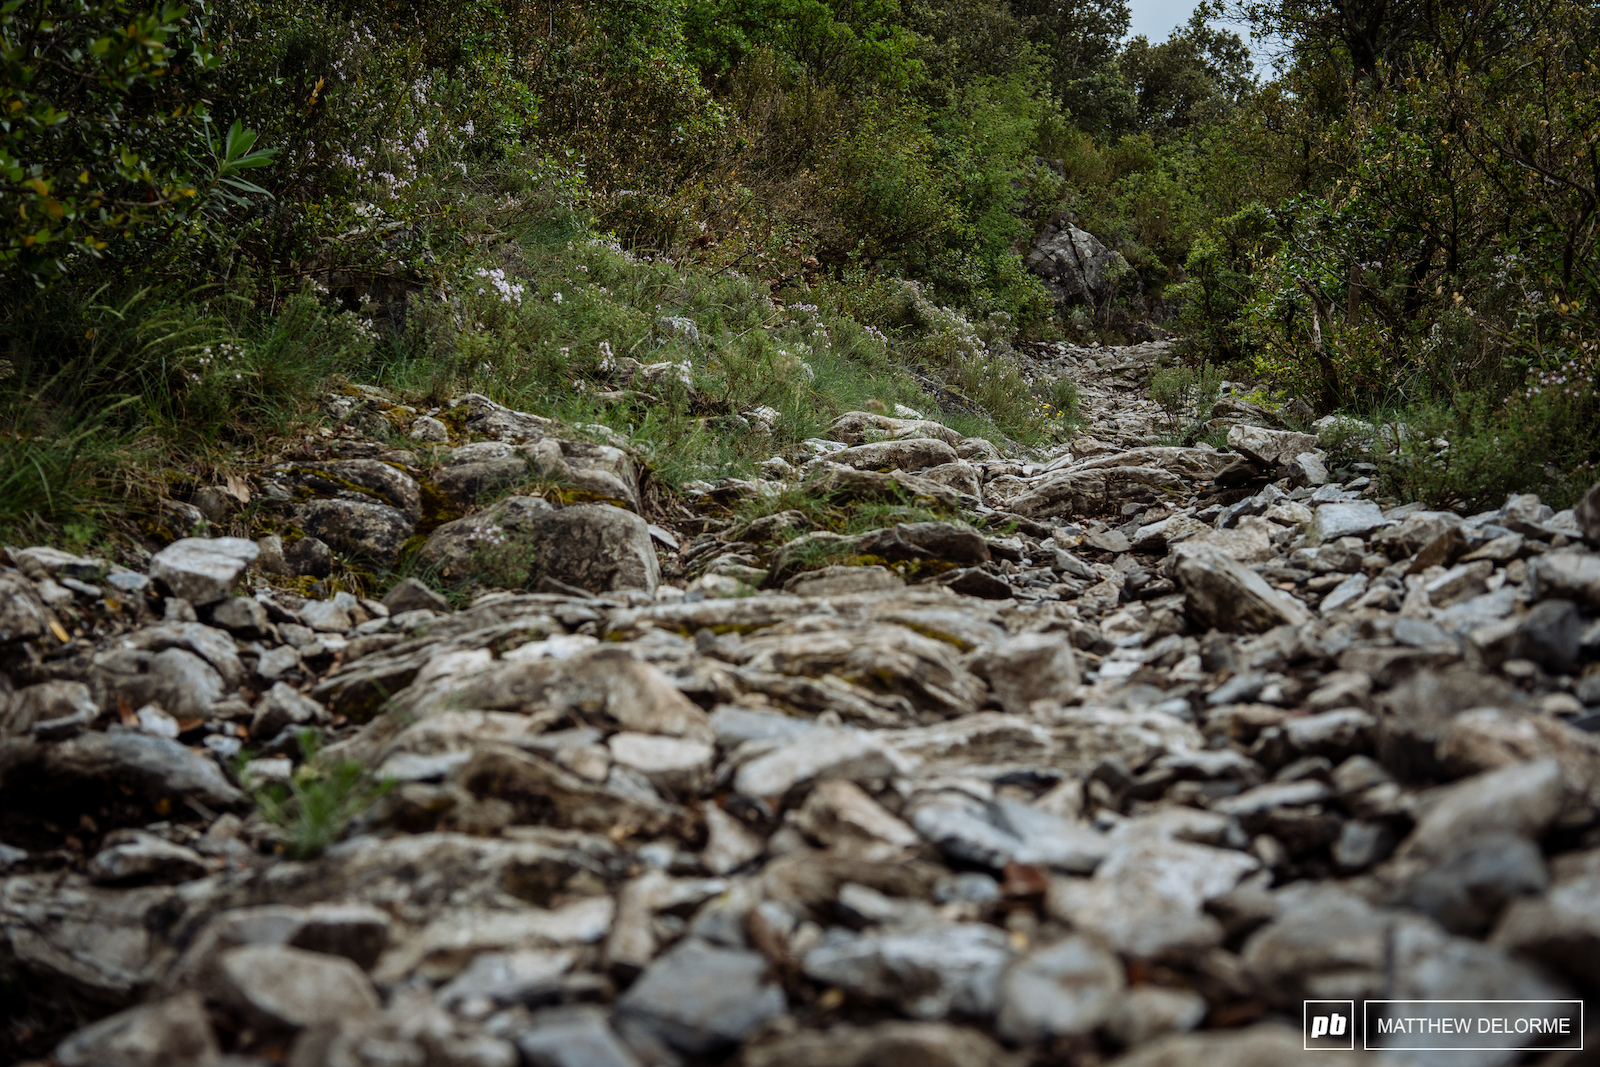 There are some carbon killers littered about these trails.